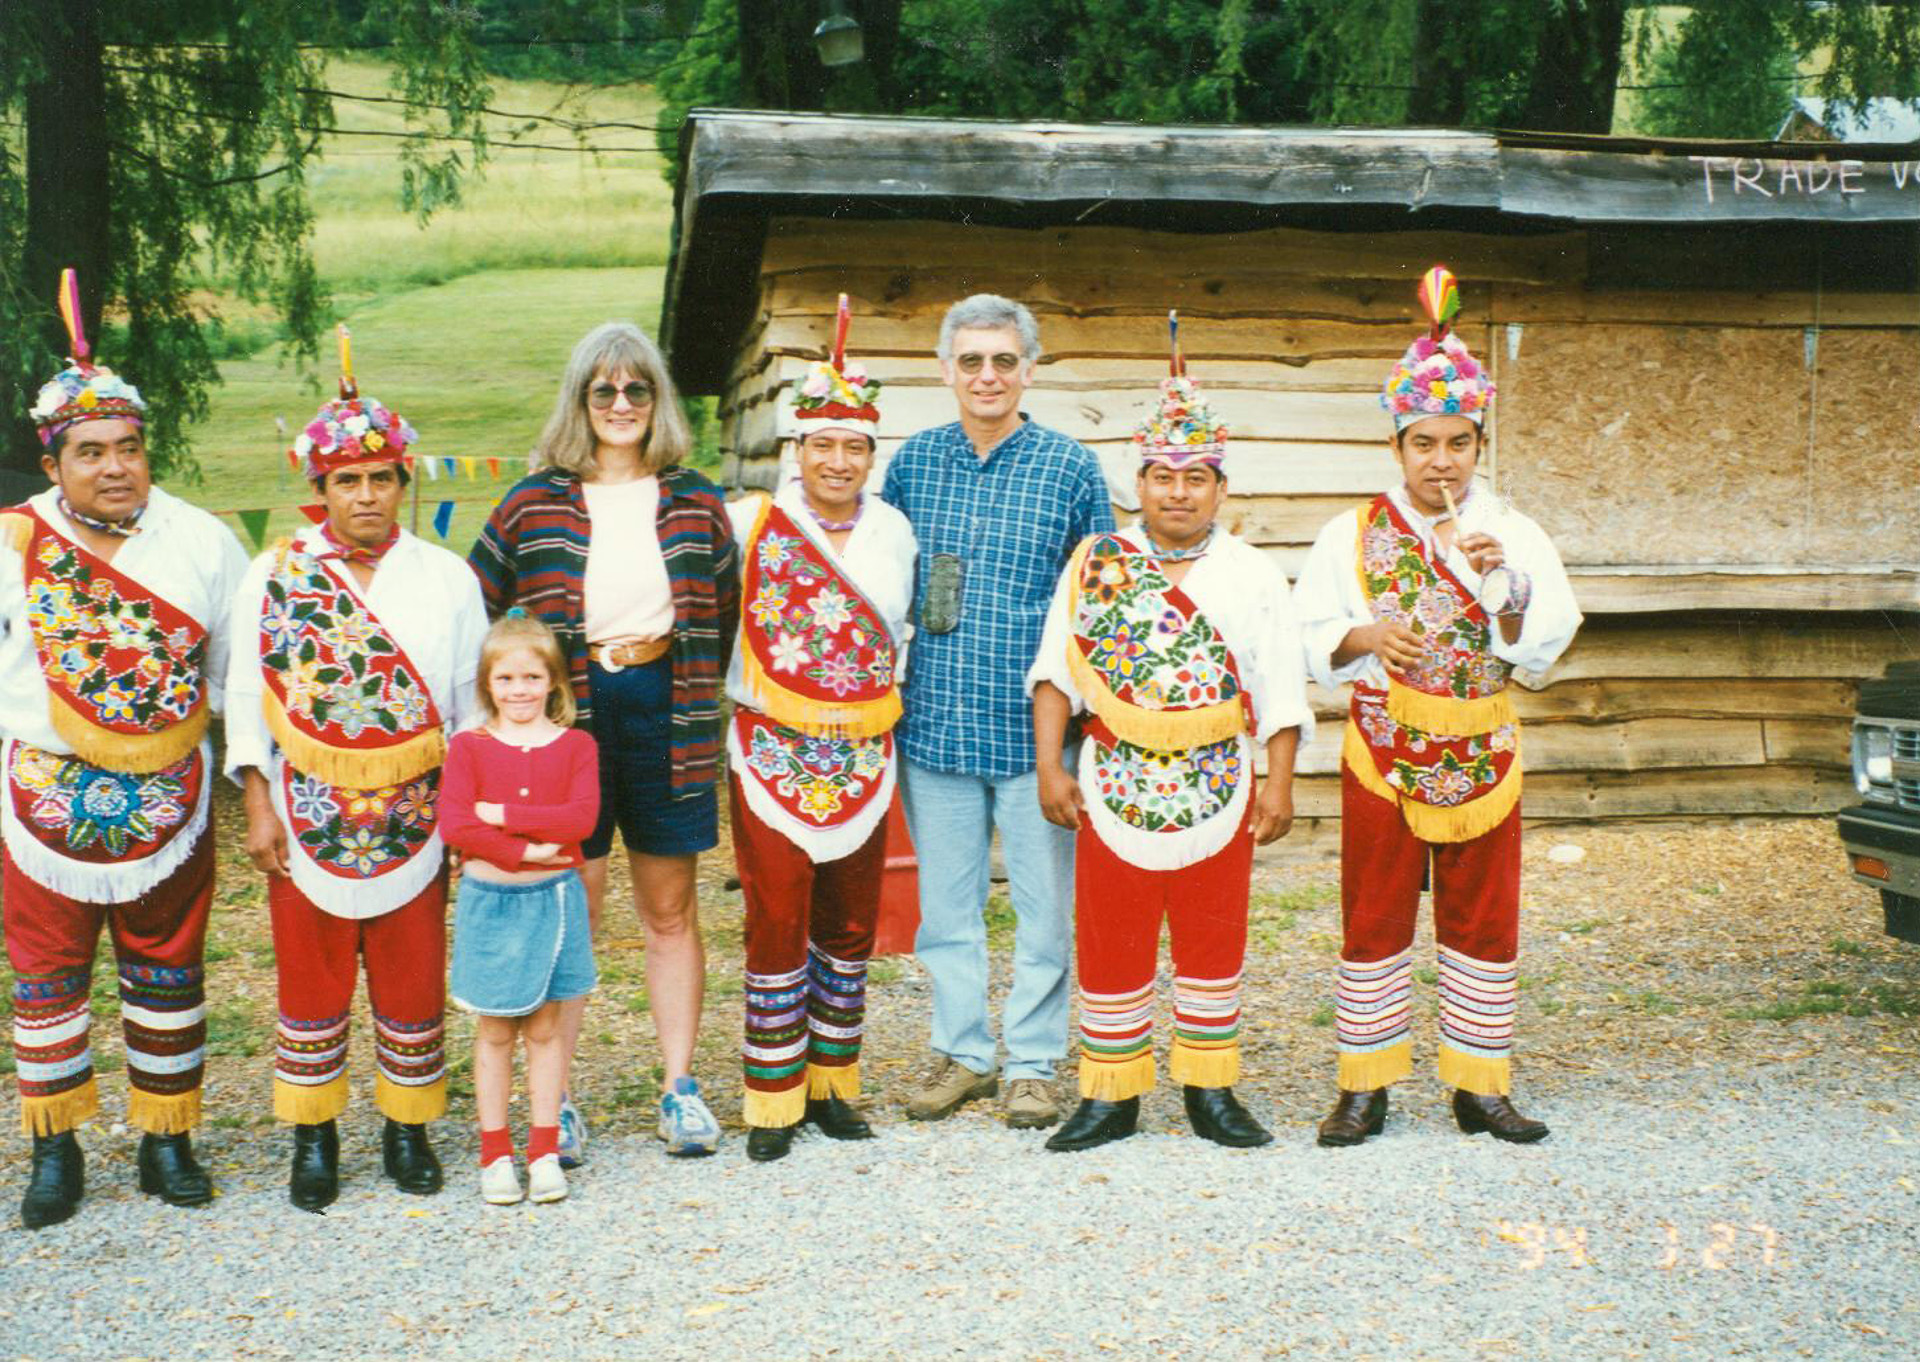 60-Pat-Beaver-and-Jeff-Boyer-with-Trade-Day-Dancers_1920px.jpg